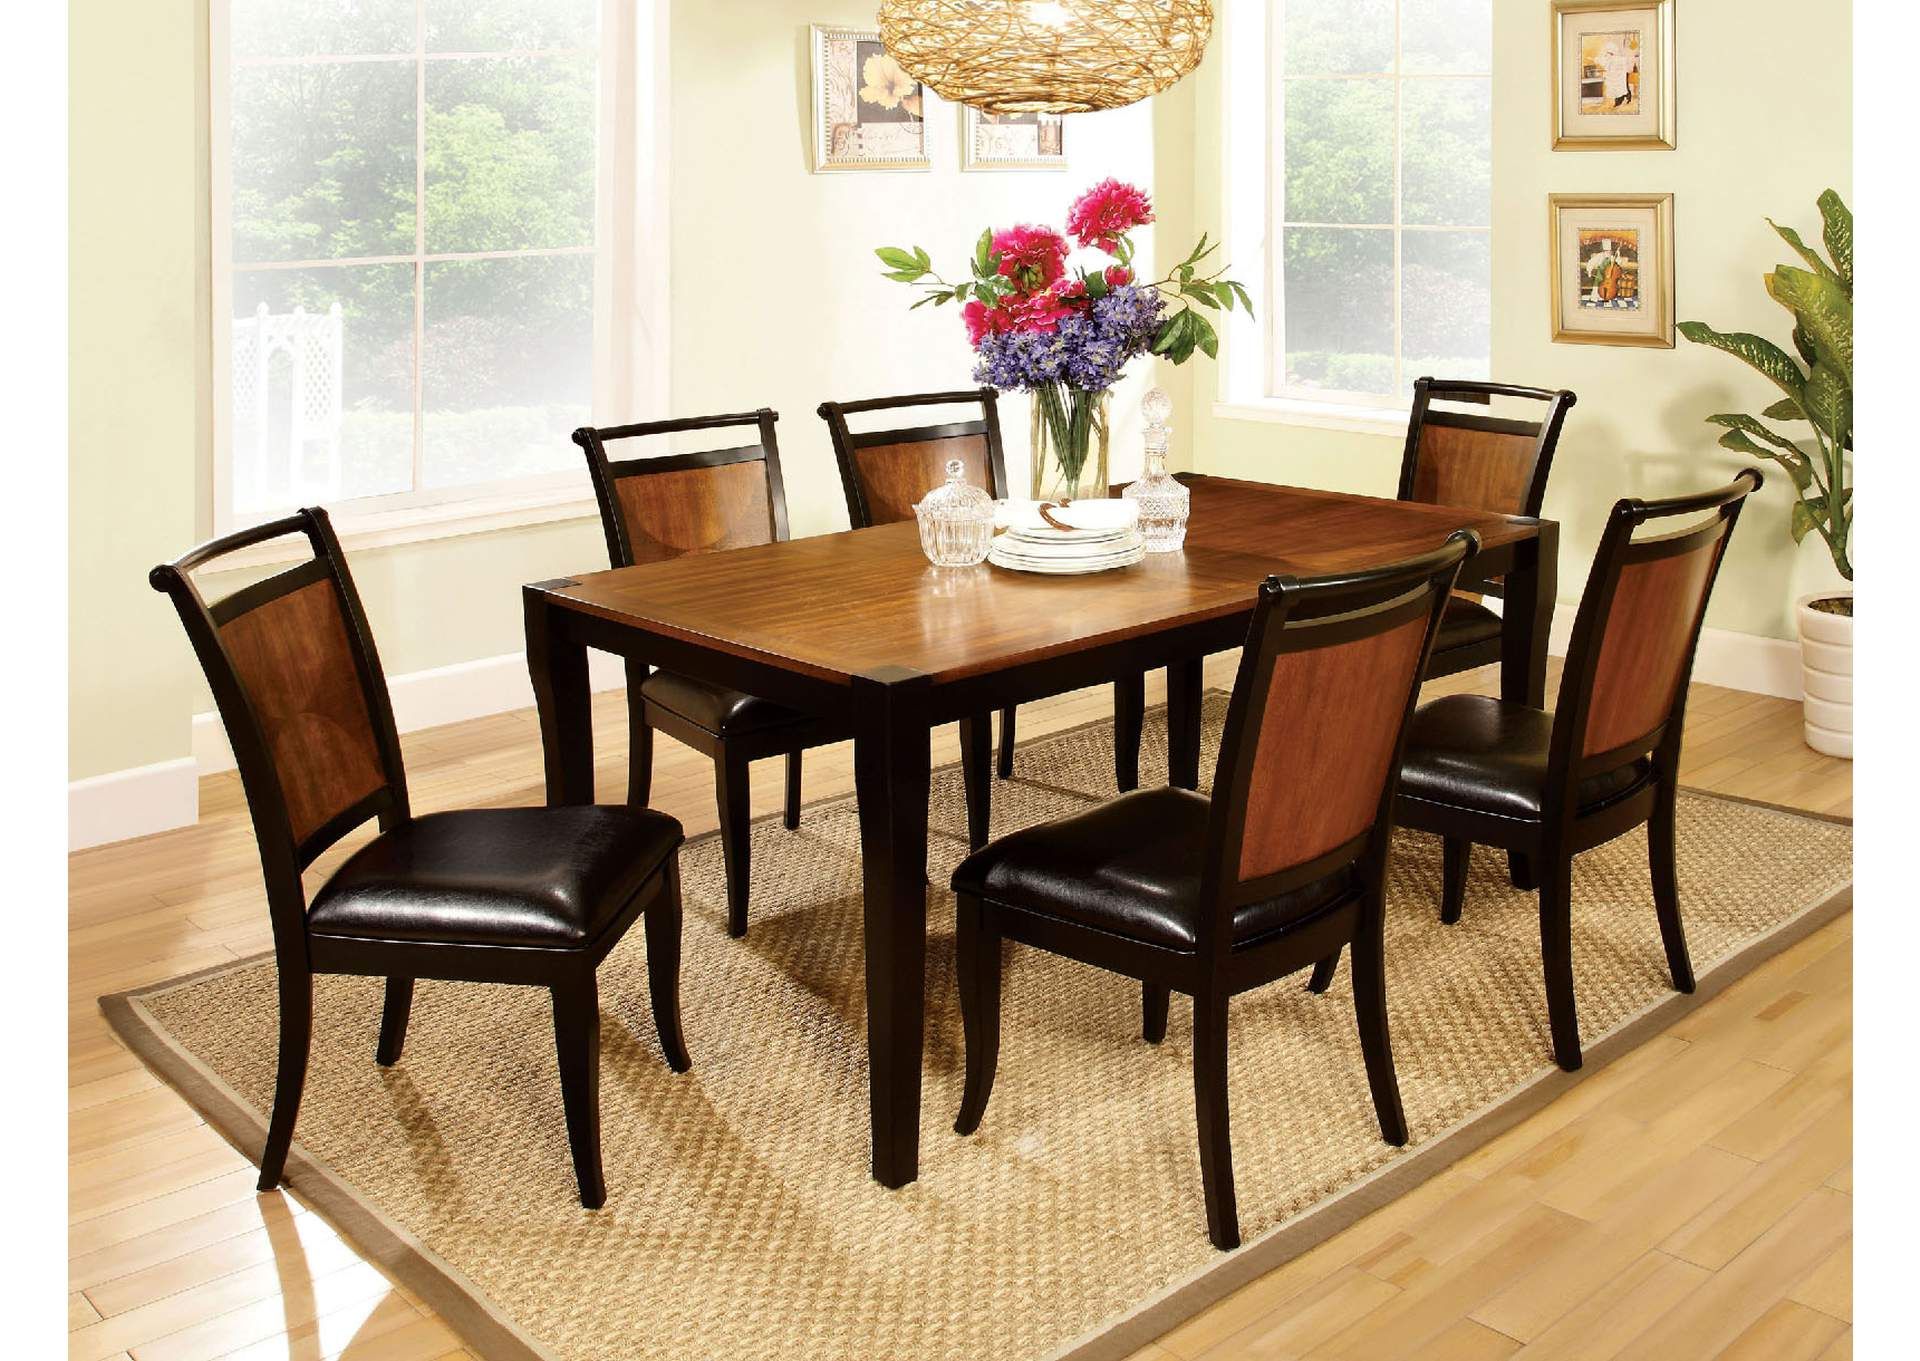 Salida l Black & Acacia Dining Table w/4 Side Chairs,Furniture of America